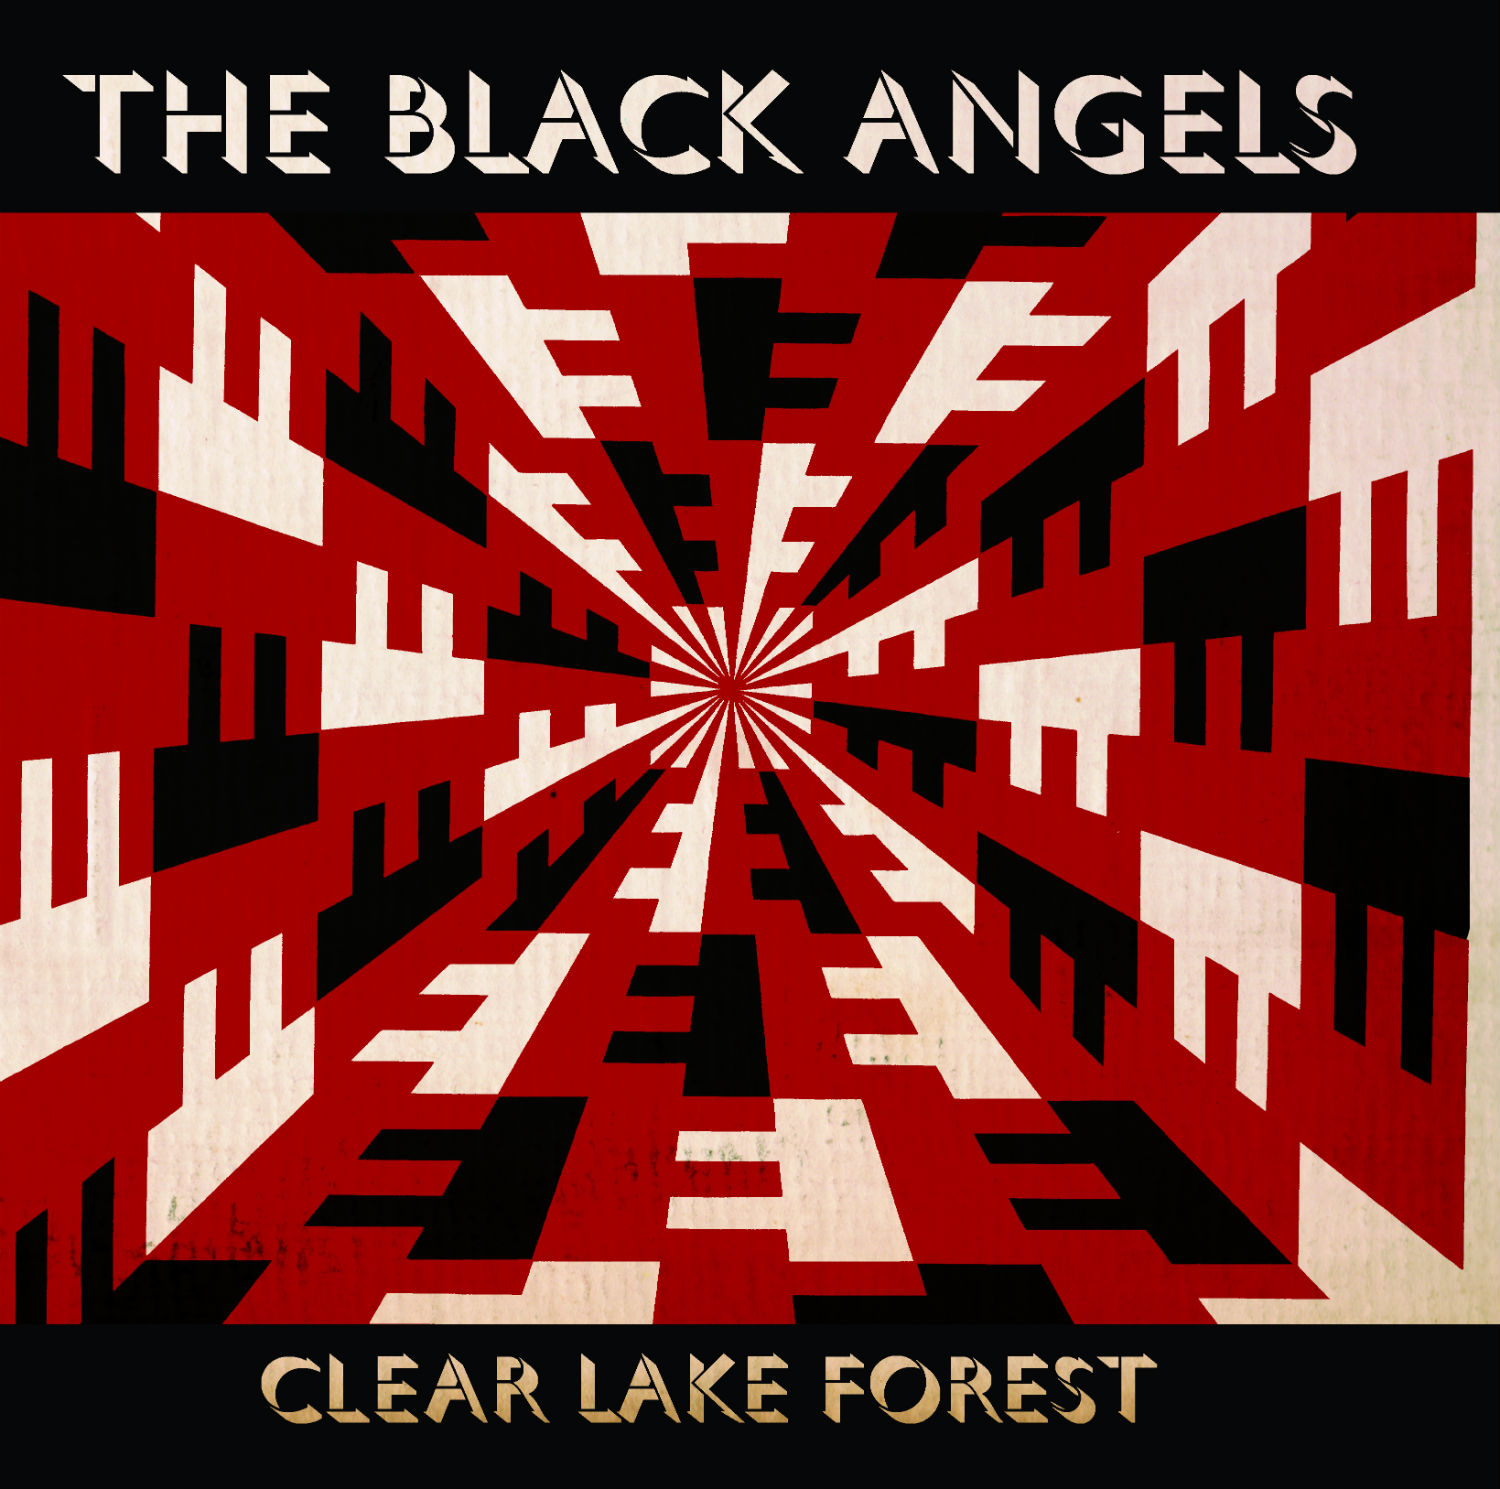 black angels cover art illusion red black